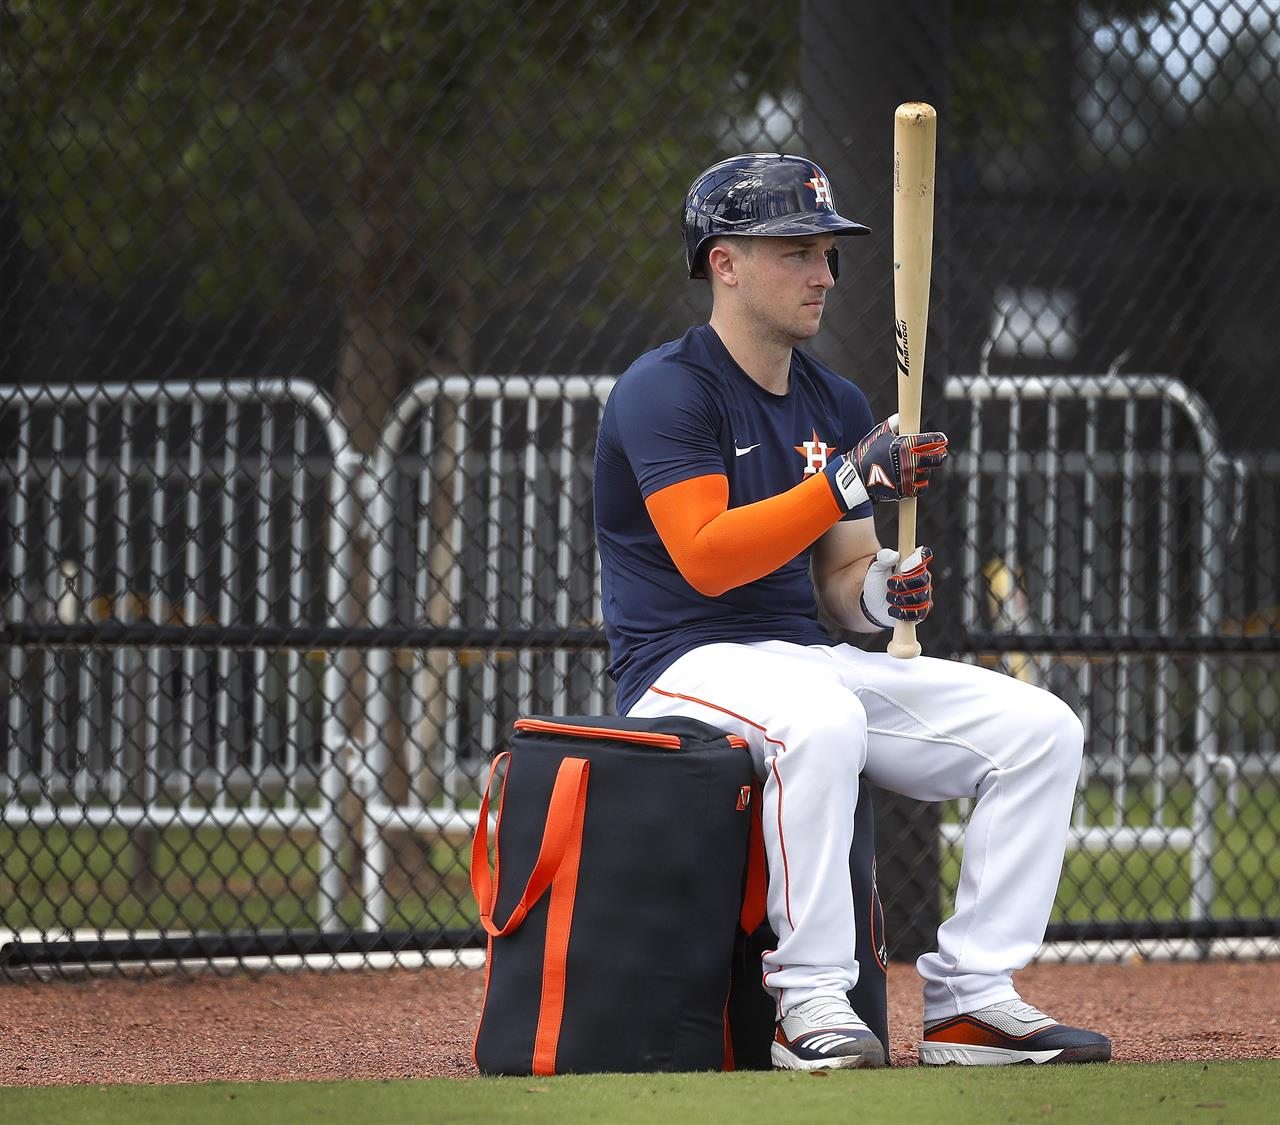 Bregman becomes 7th Astros player hit  by pitch in 5 games